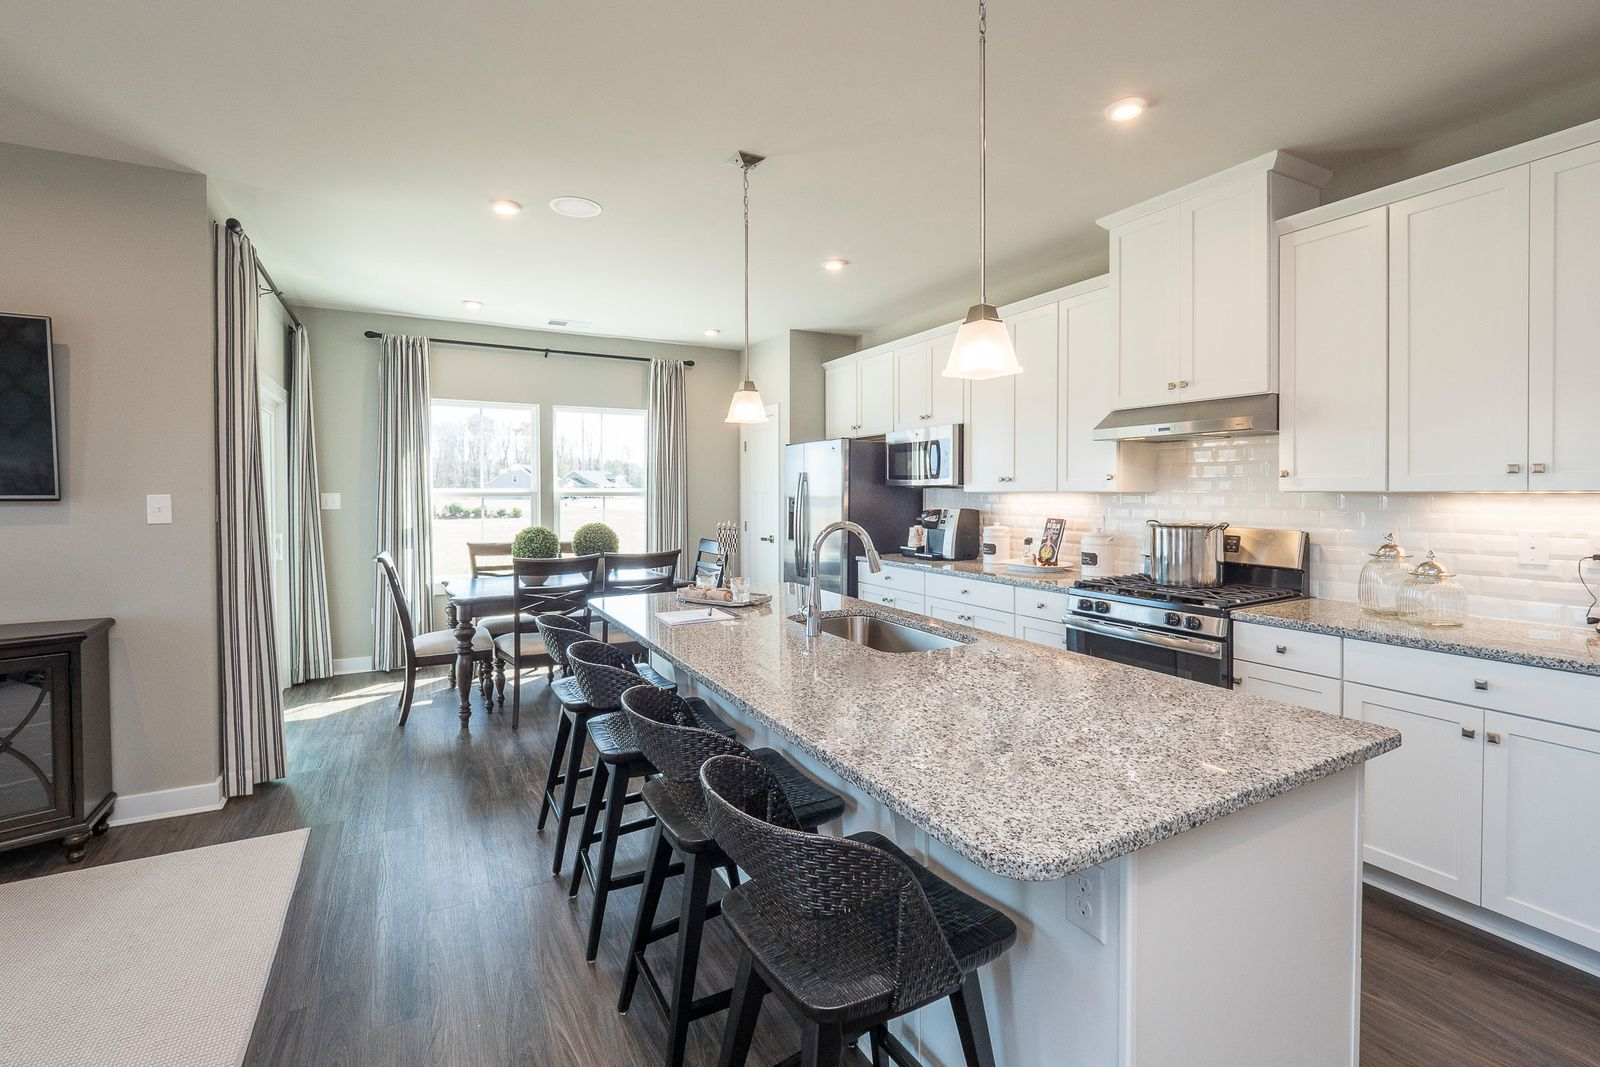 Kitchen featured in the Bramante By Ryan Homes in Sussex, DE